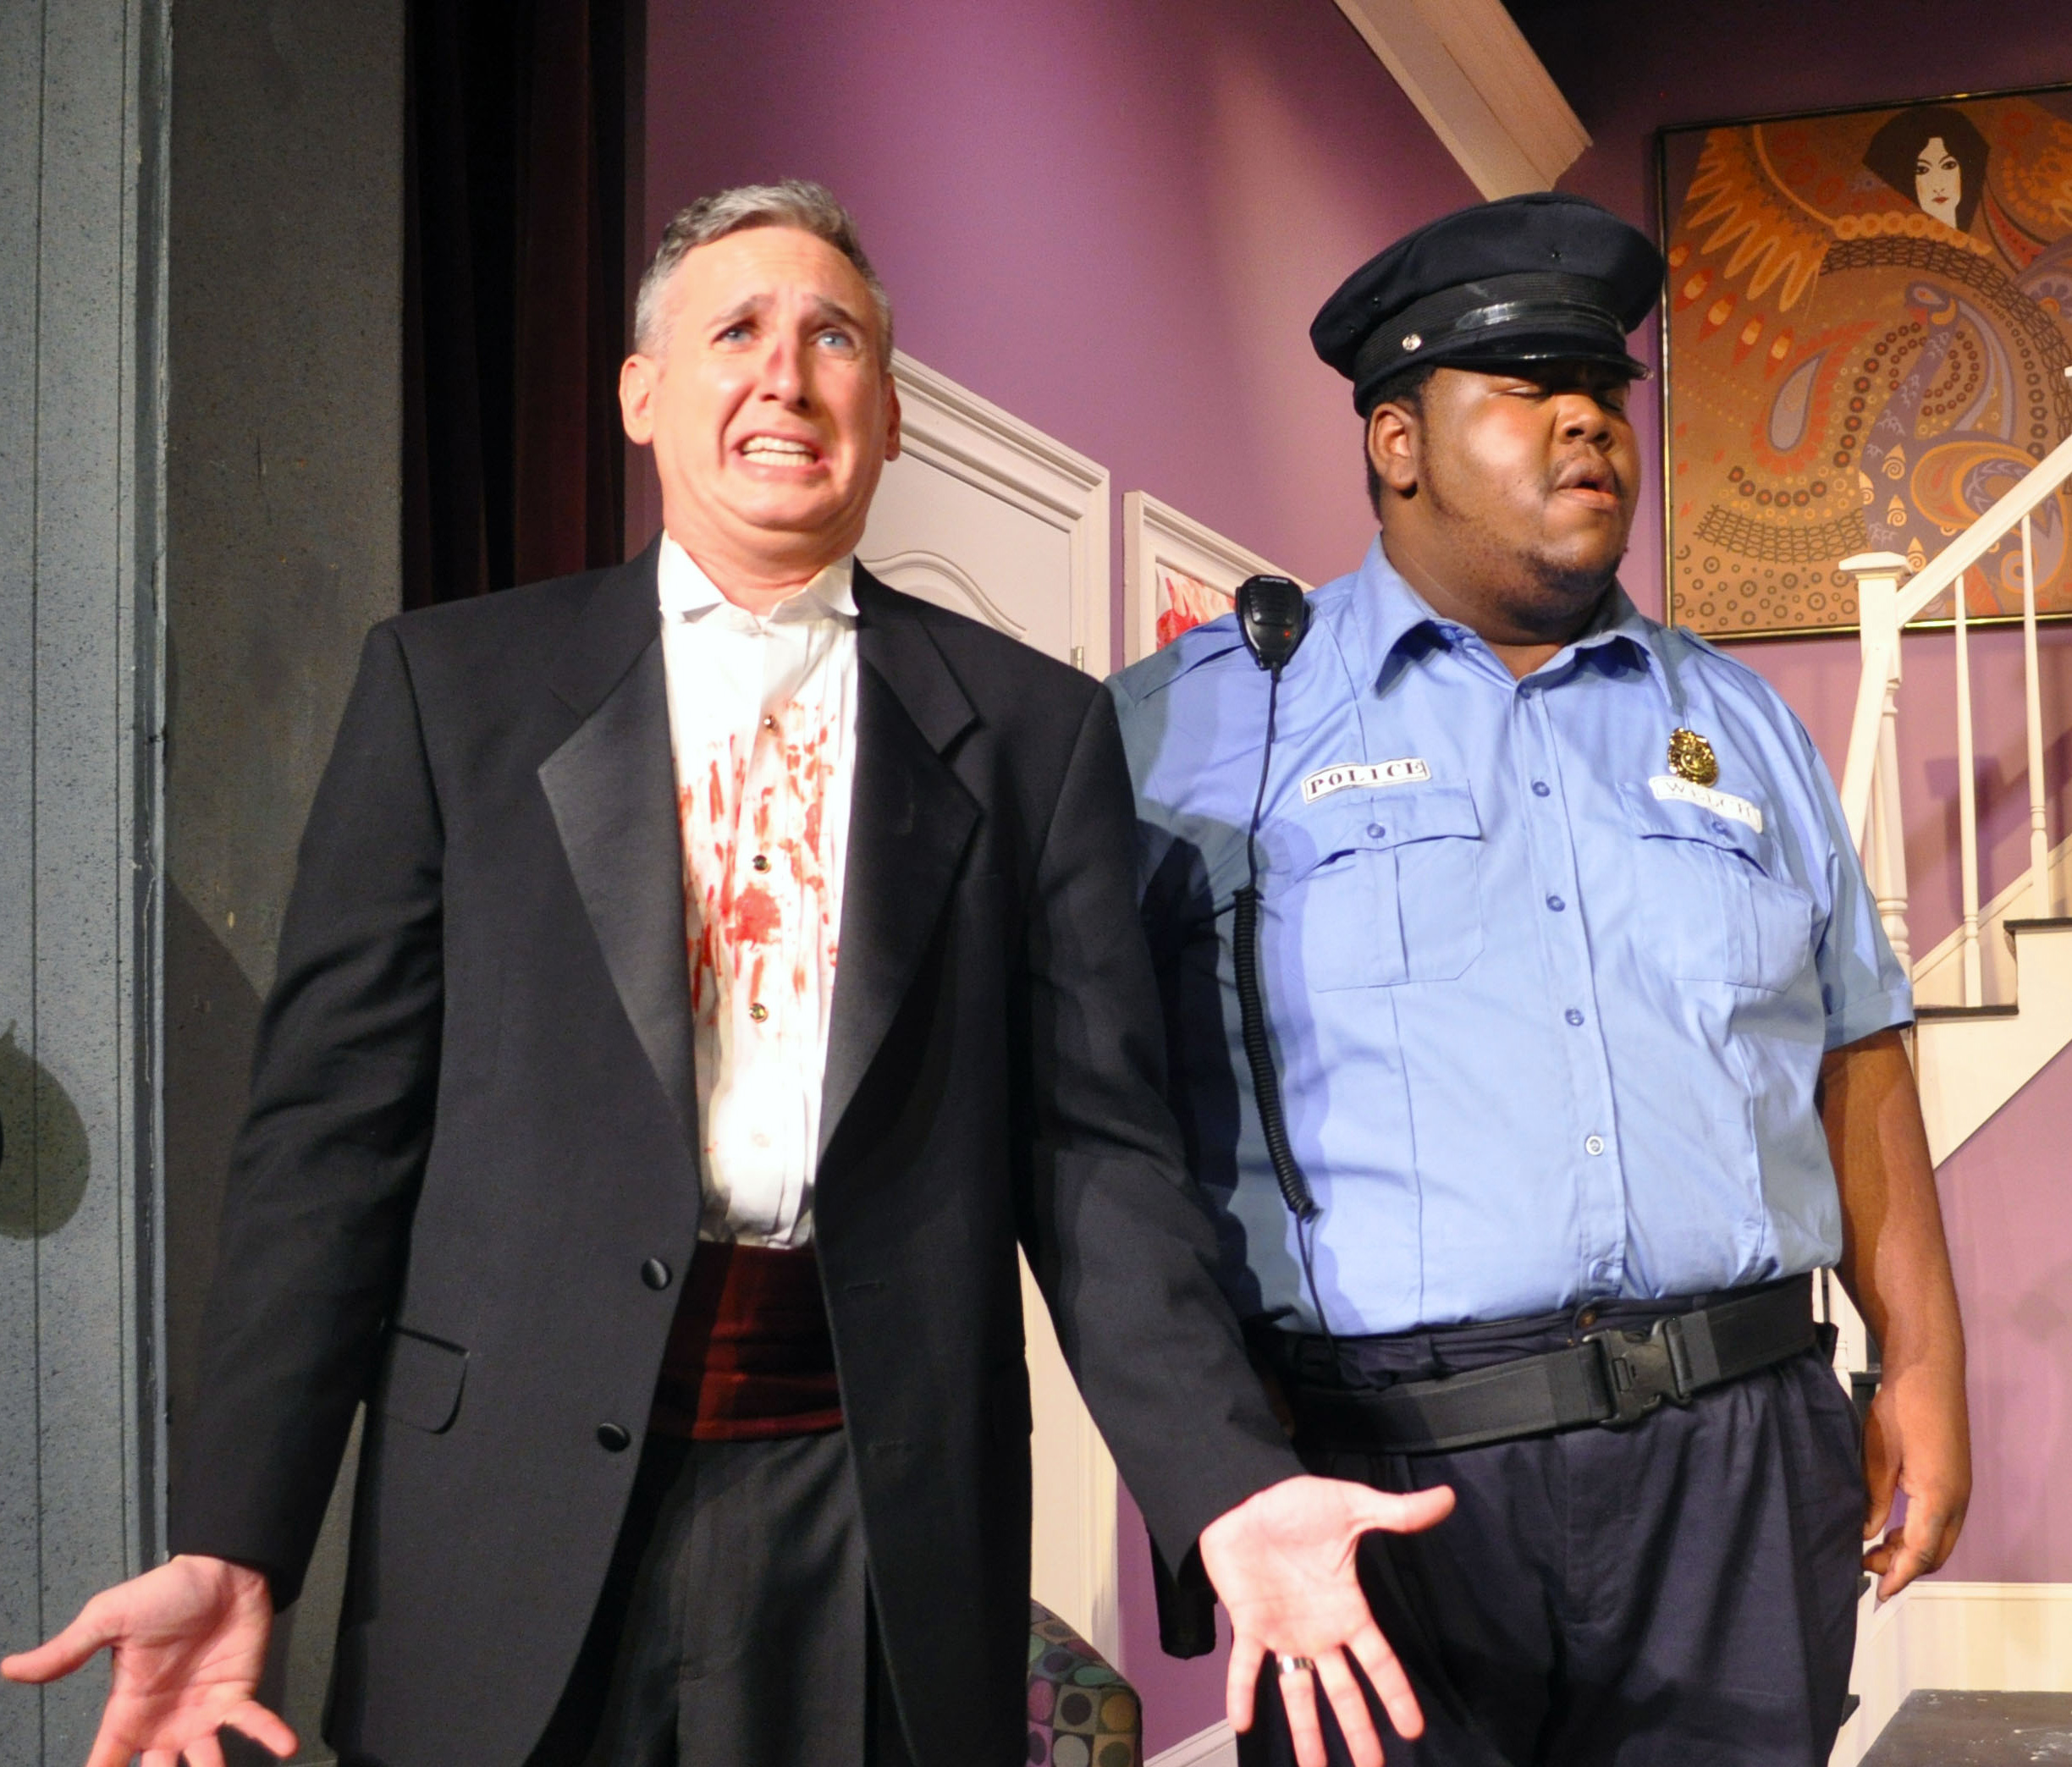 Zell Murphy as Glenn Cooper and Eric Jones as Officer Welch - Both recognized as 2014 Best Featured Actors - DCMTA Photo by Chip Gertzog Providence Players